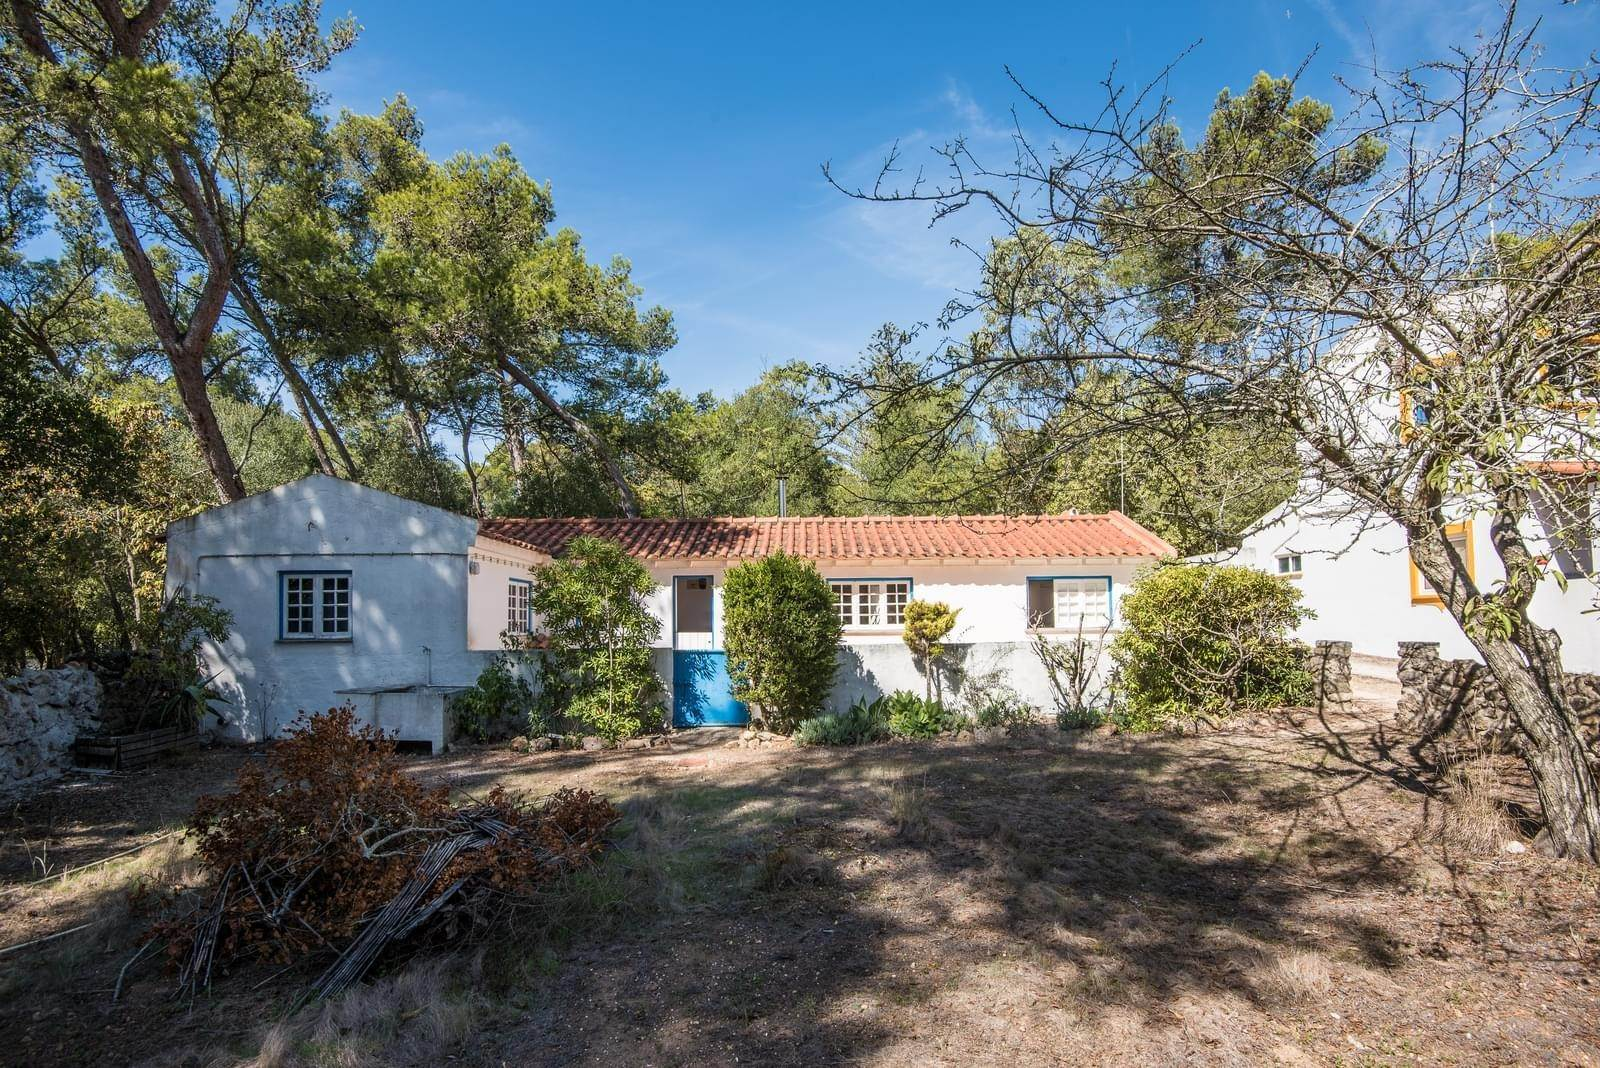 9. 別墅 / 联排别墅 為 出售 在 Unique property, located next to Quinta da Marinha, a quiet area.The property comprises six small villas, with deep refu... Cascais, 葡萄牙